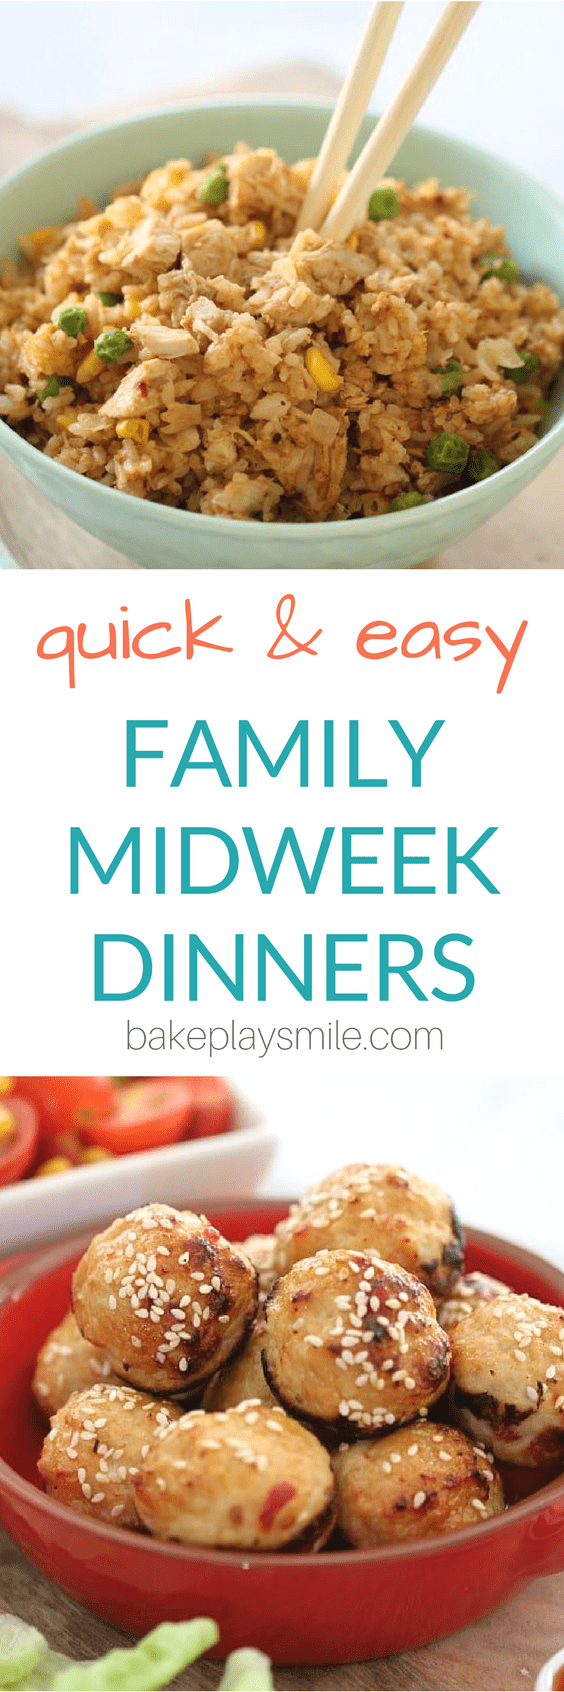 The most popular quick and easy family dinners... with everything from pulled pork burgers to 20 minute pastas, lasagne to meatballs, fried rice to pies... there really is something to suit everyone!